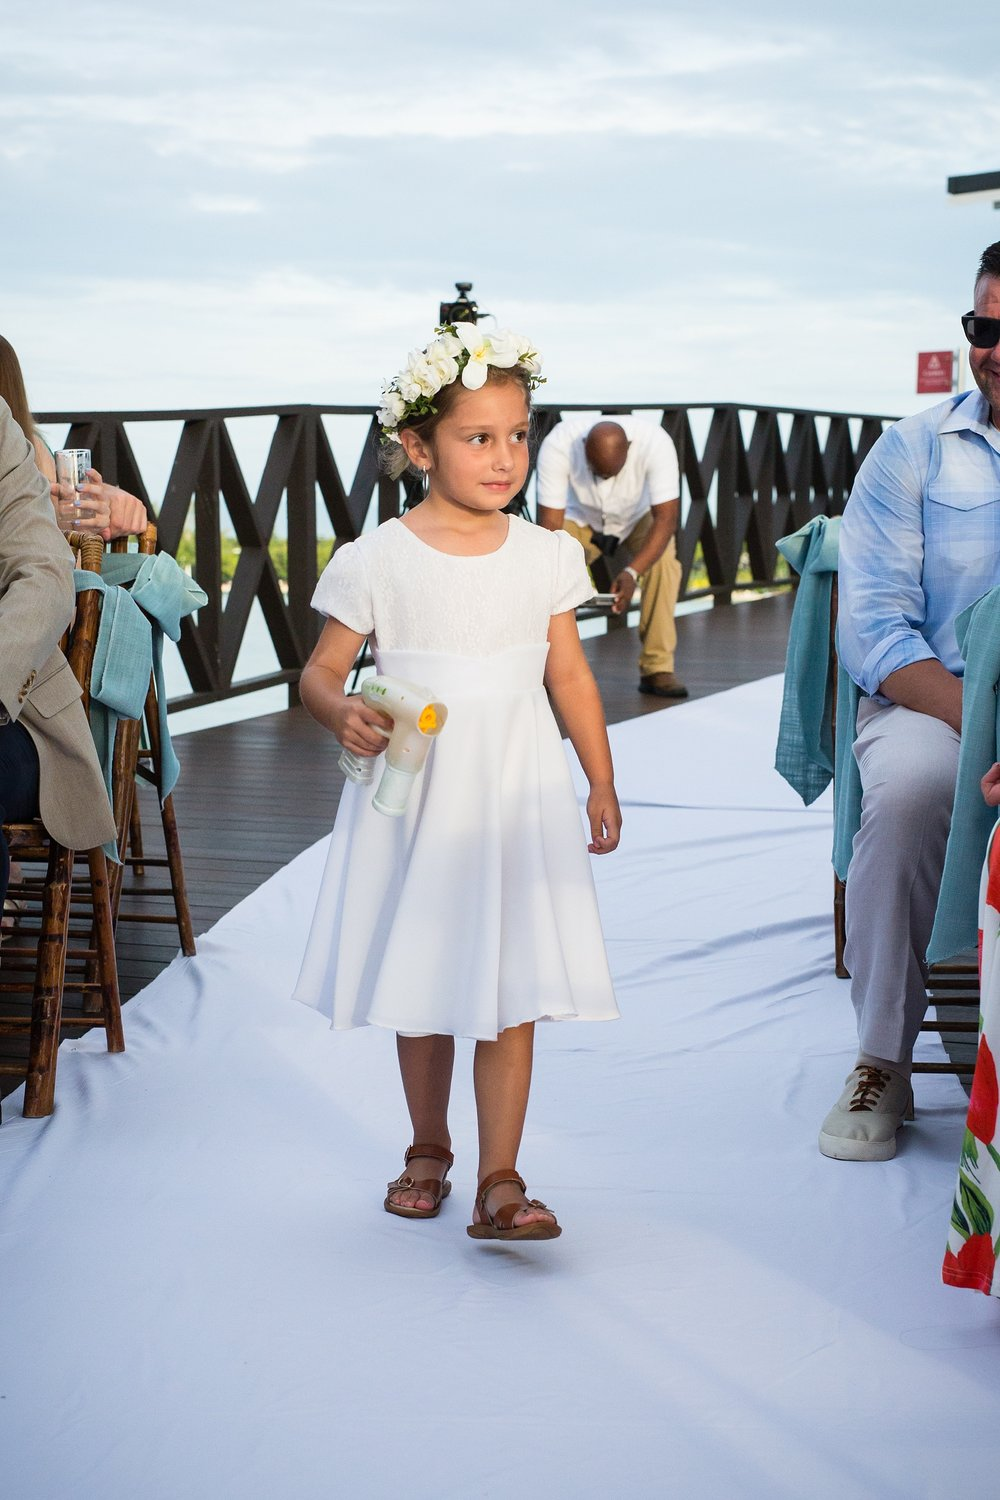 Brandon_Shafer_Photography_Scott_Marisa_Negril_Jamaica_Destination_Wedding_Photography_0026.jpg